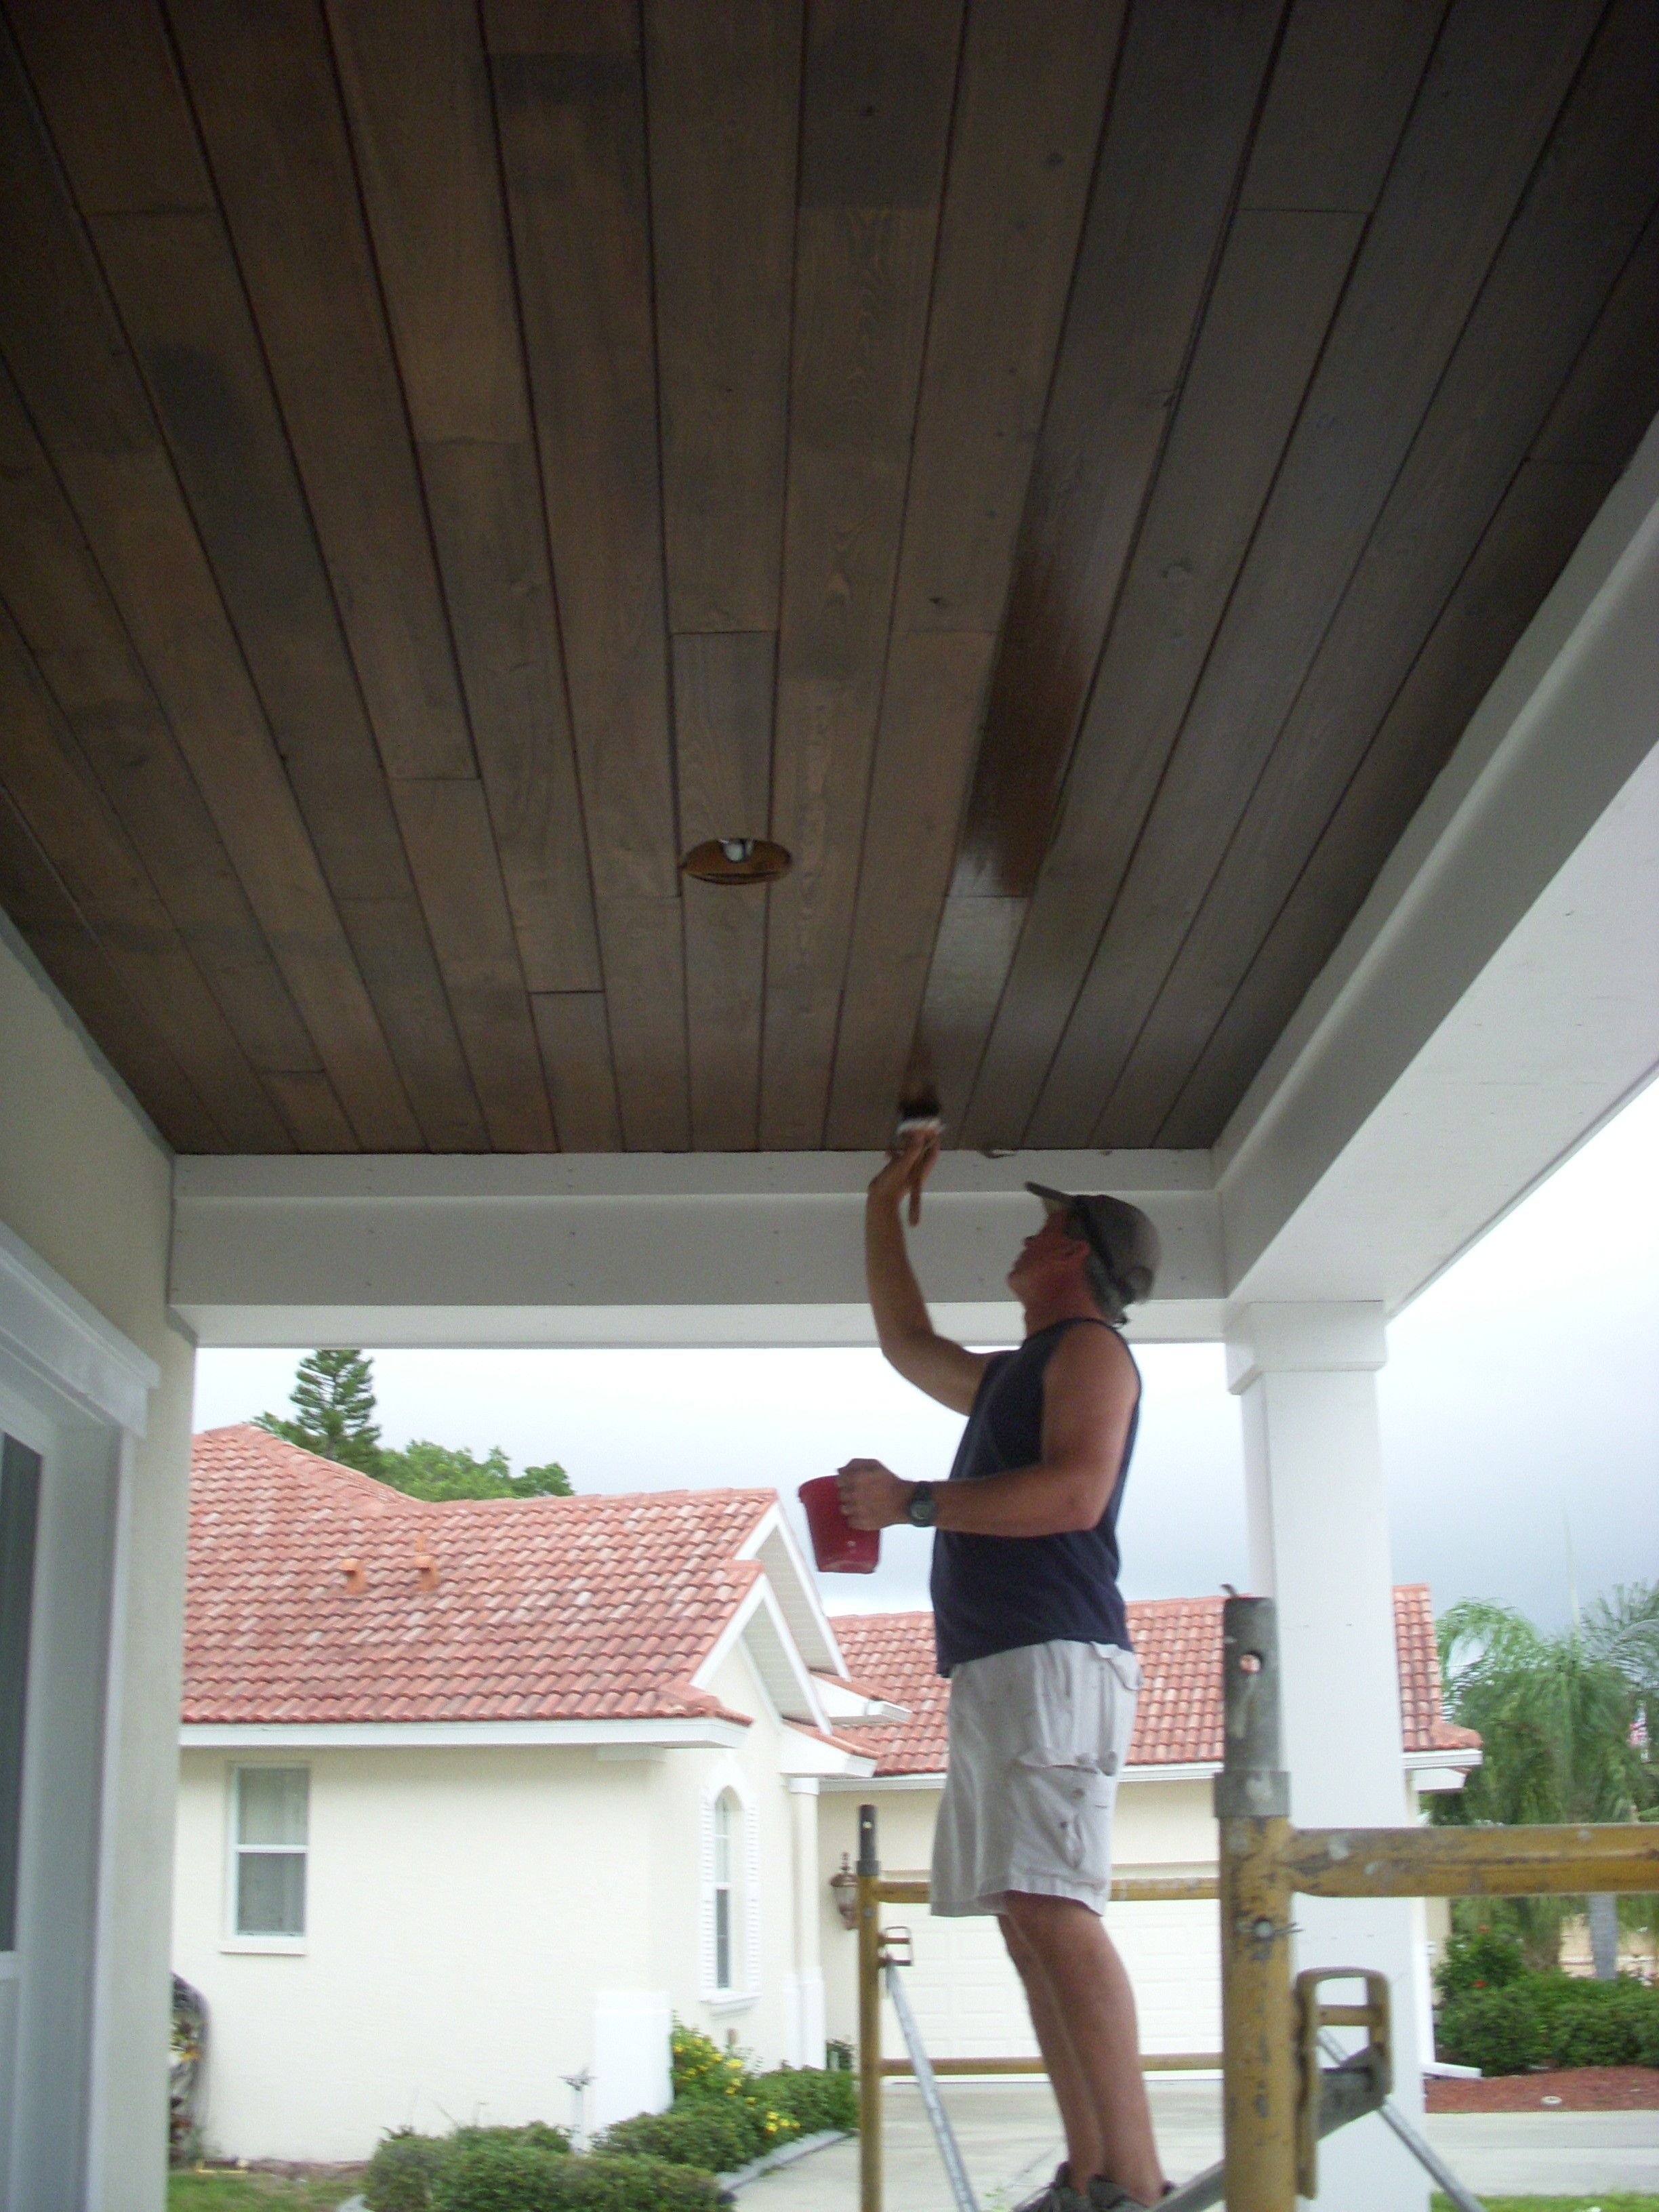 Wood Cielings Love Them Inside And Out Uniquepatio House With